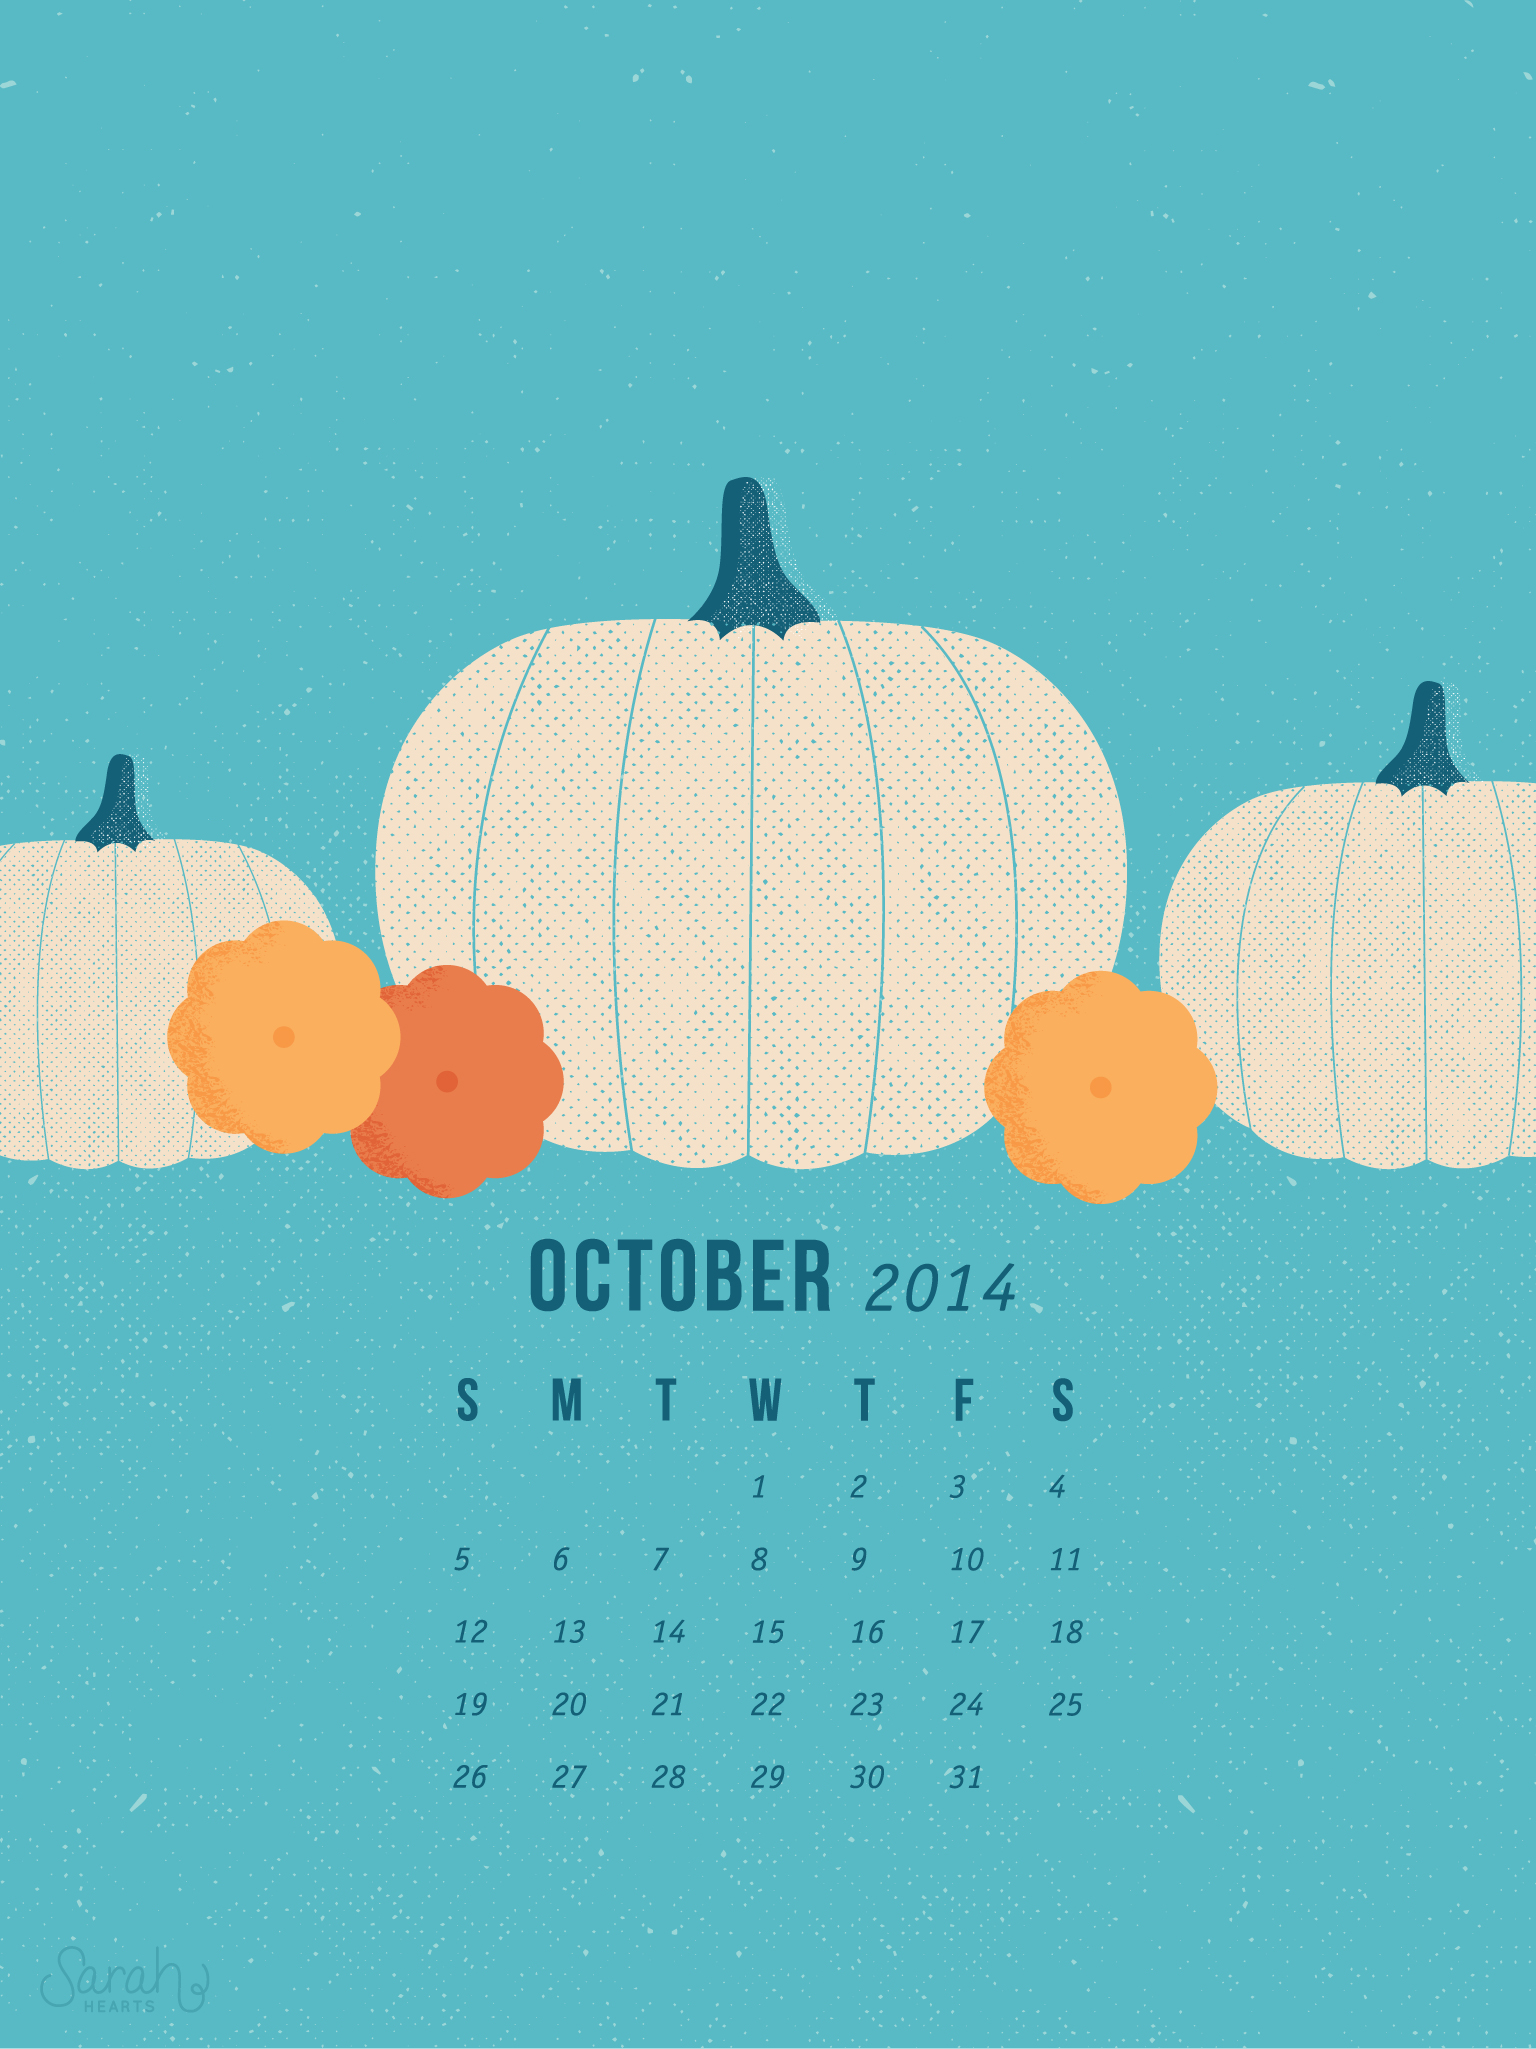 Fall Wallpaper With Pumpkins October 2014 Calendar Wallpapers Sarah Hearts